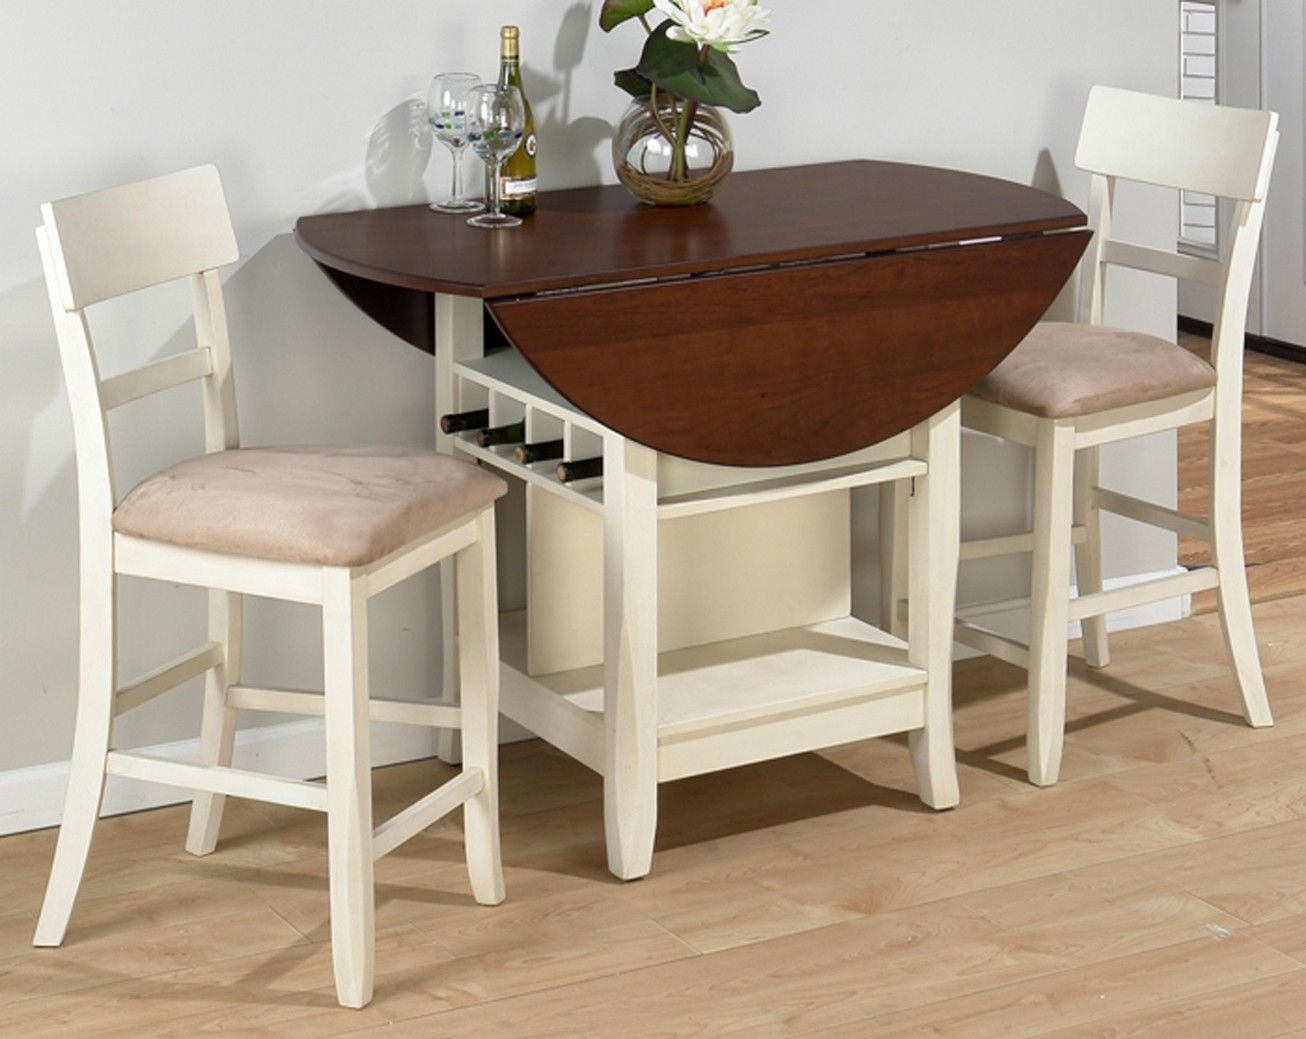 Statue Of Compact Dining Space Arrangement With Drop Leaf Dining Table For  Small Spaces